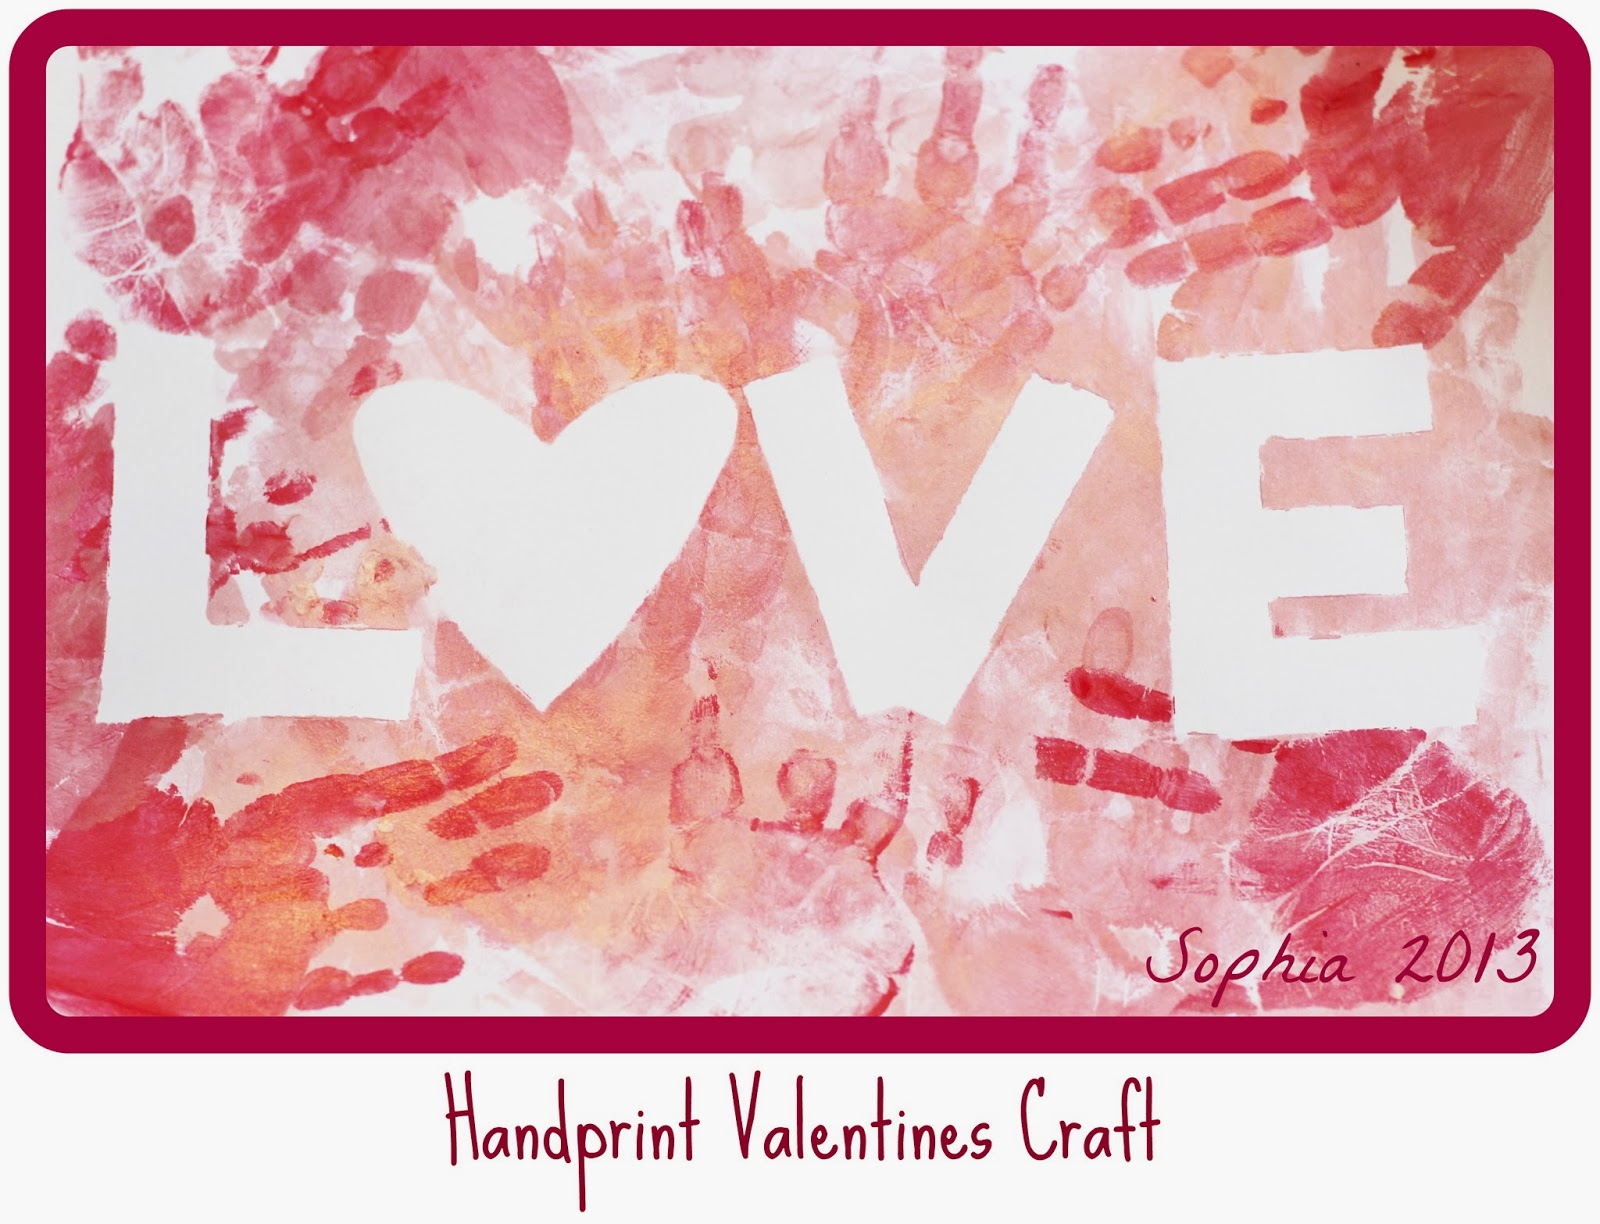 Handprint Valentines Craft U2013 From Orchard Girls